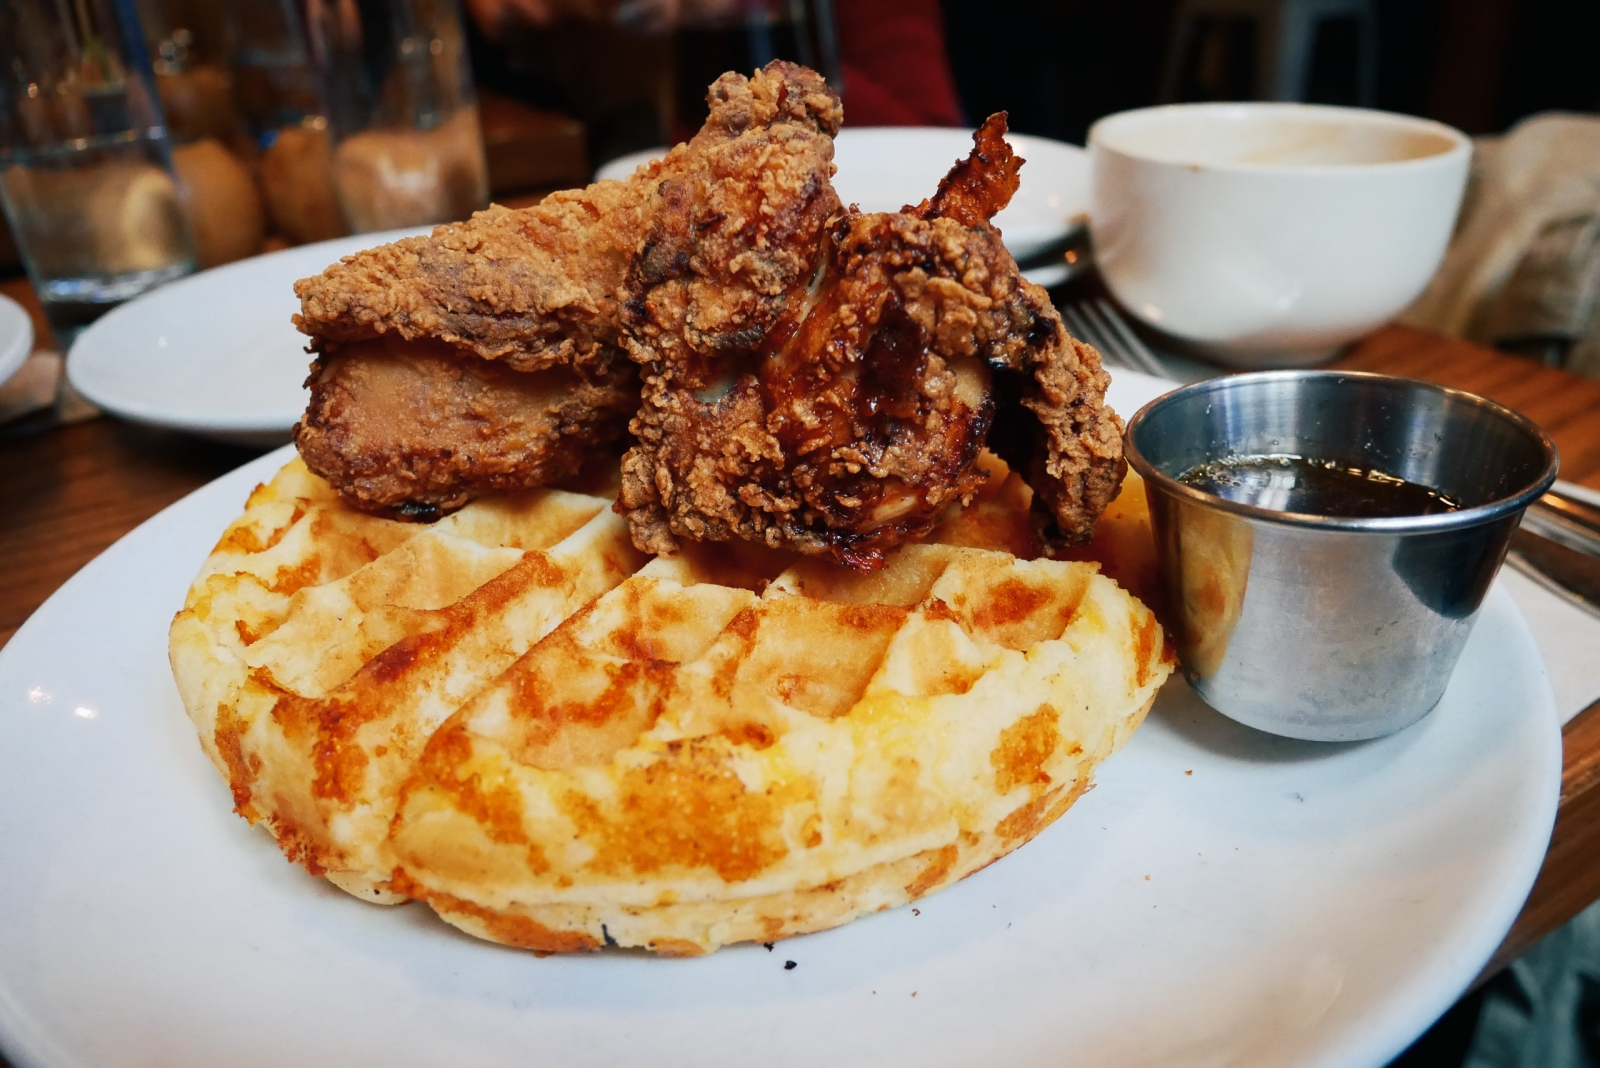 Friedman's fried chicken and cheddar waffle